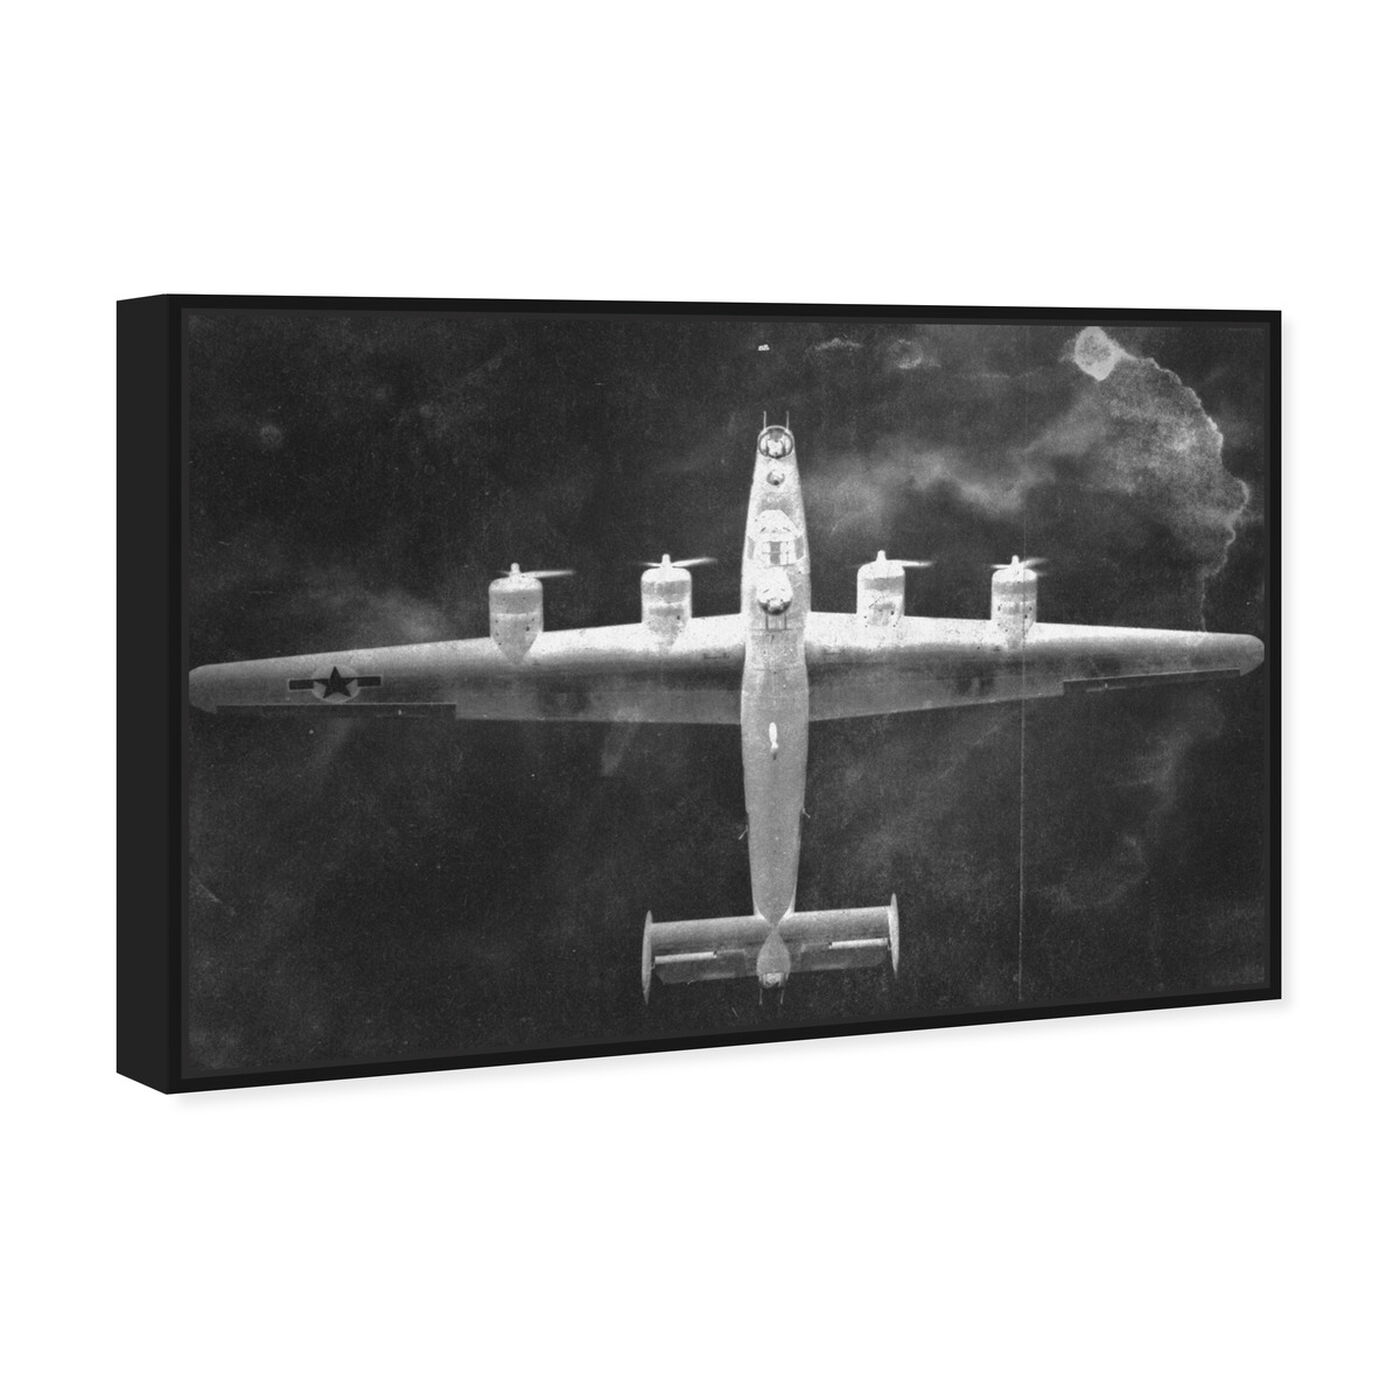 Angled view of Aircraft Inverted featuring transportation and airplanes art.